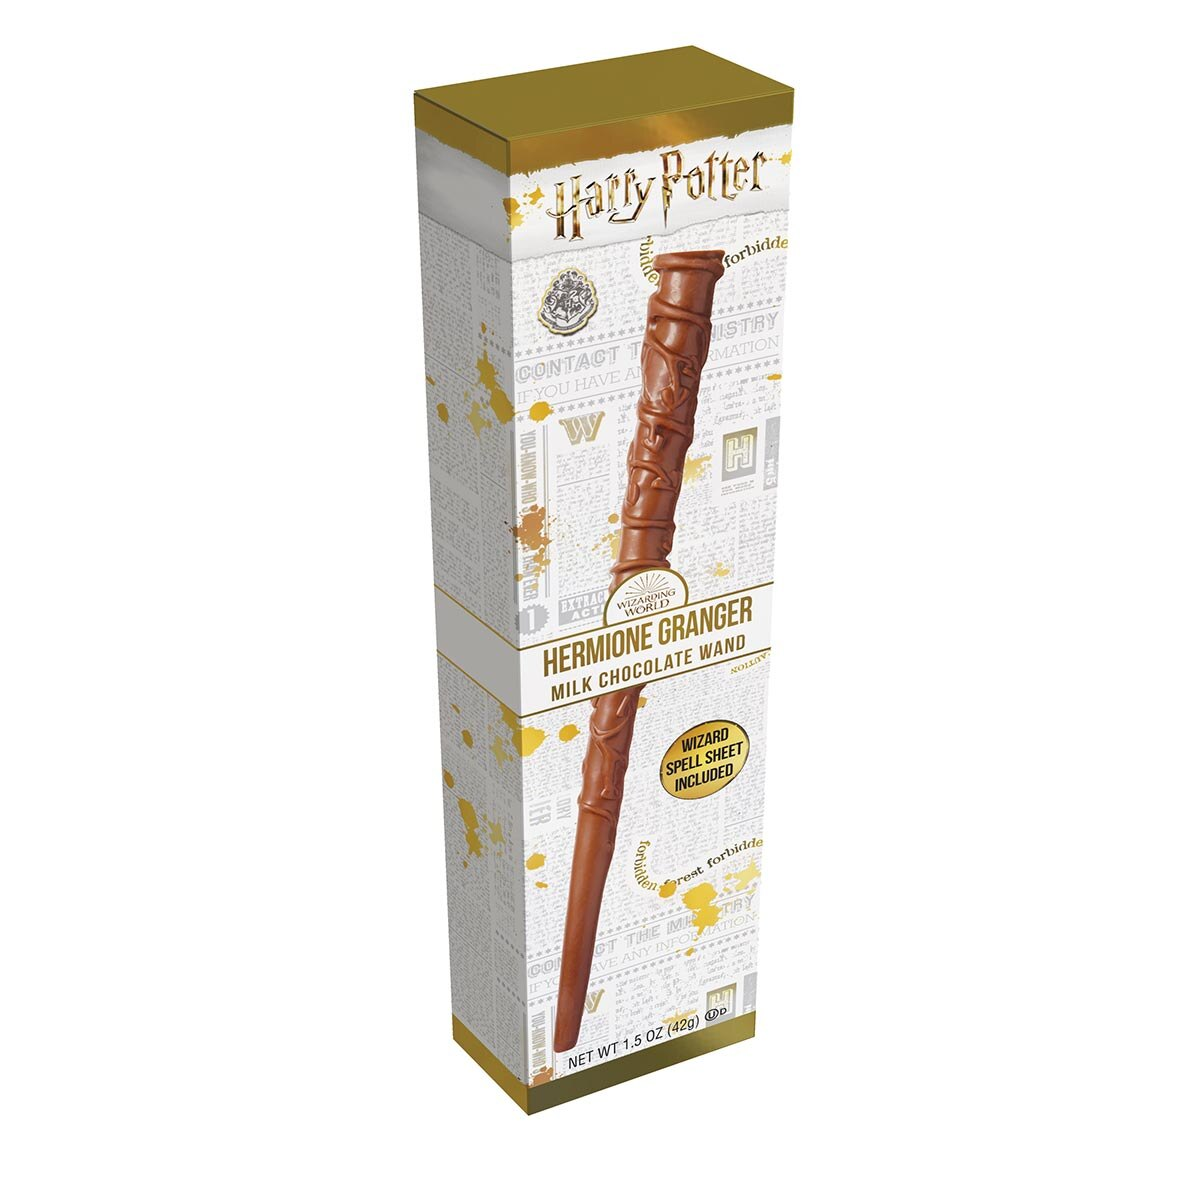 Jelly Belly Harry Potter™ Hermione Granger Chocolate Wand - 1.5 oz 0